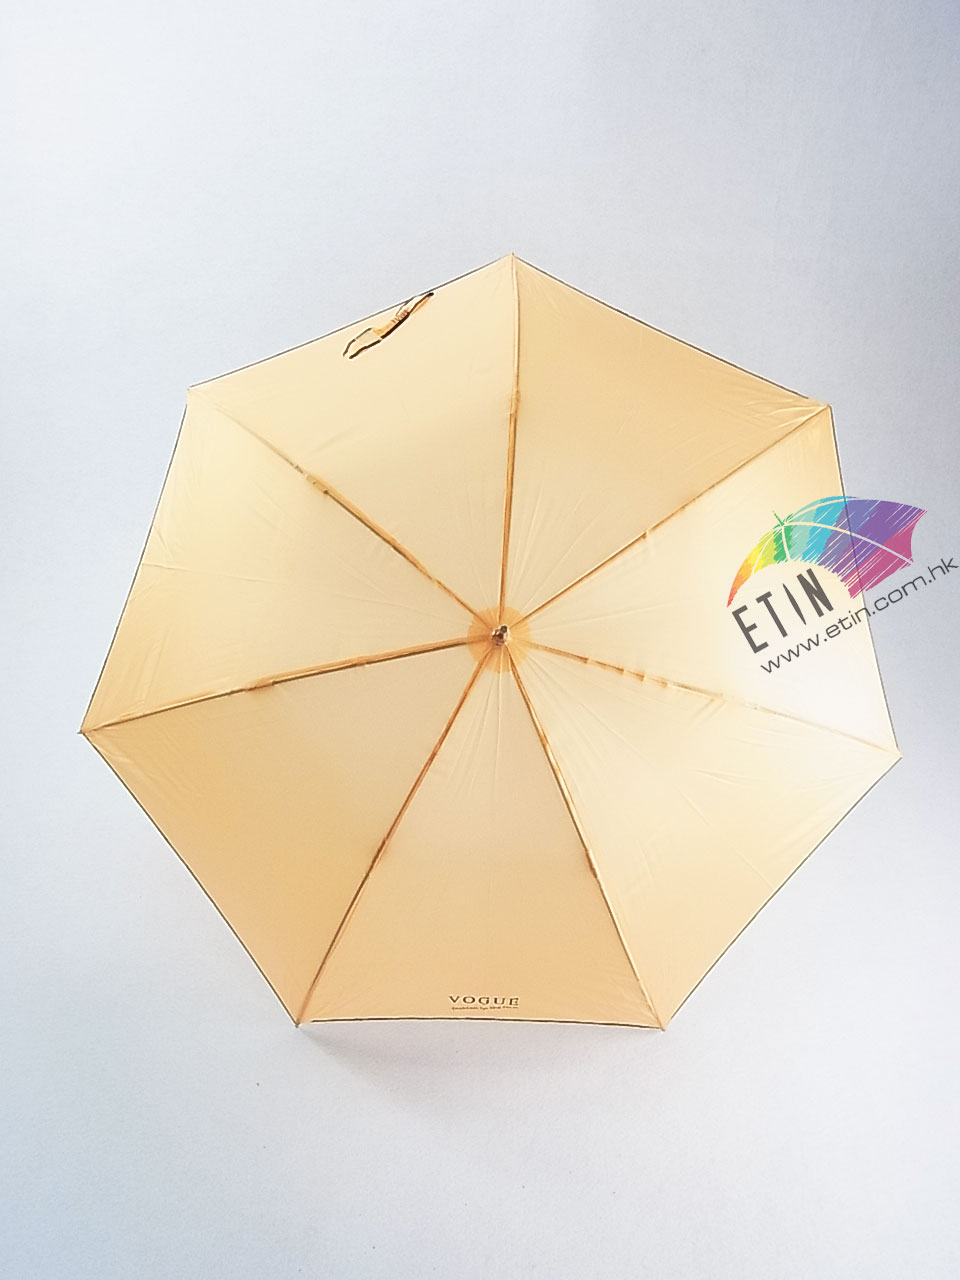 Etin umbrella promotional A078